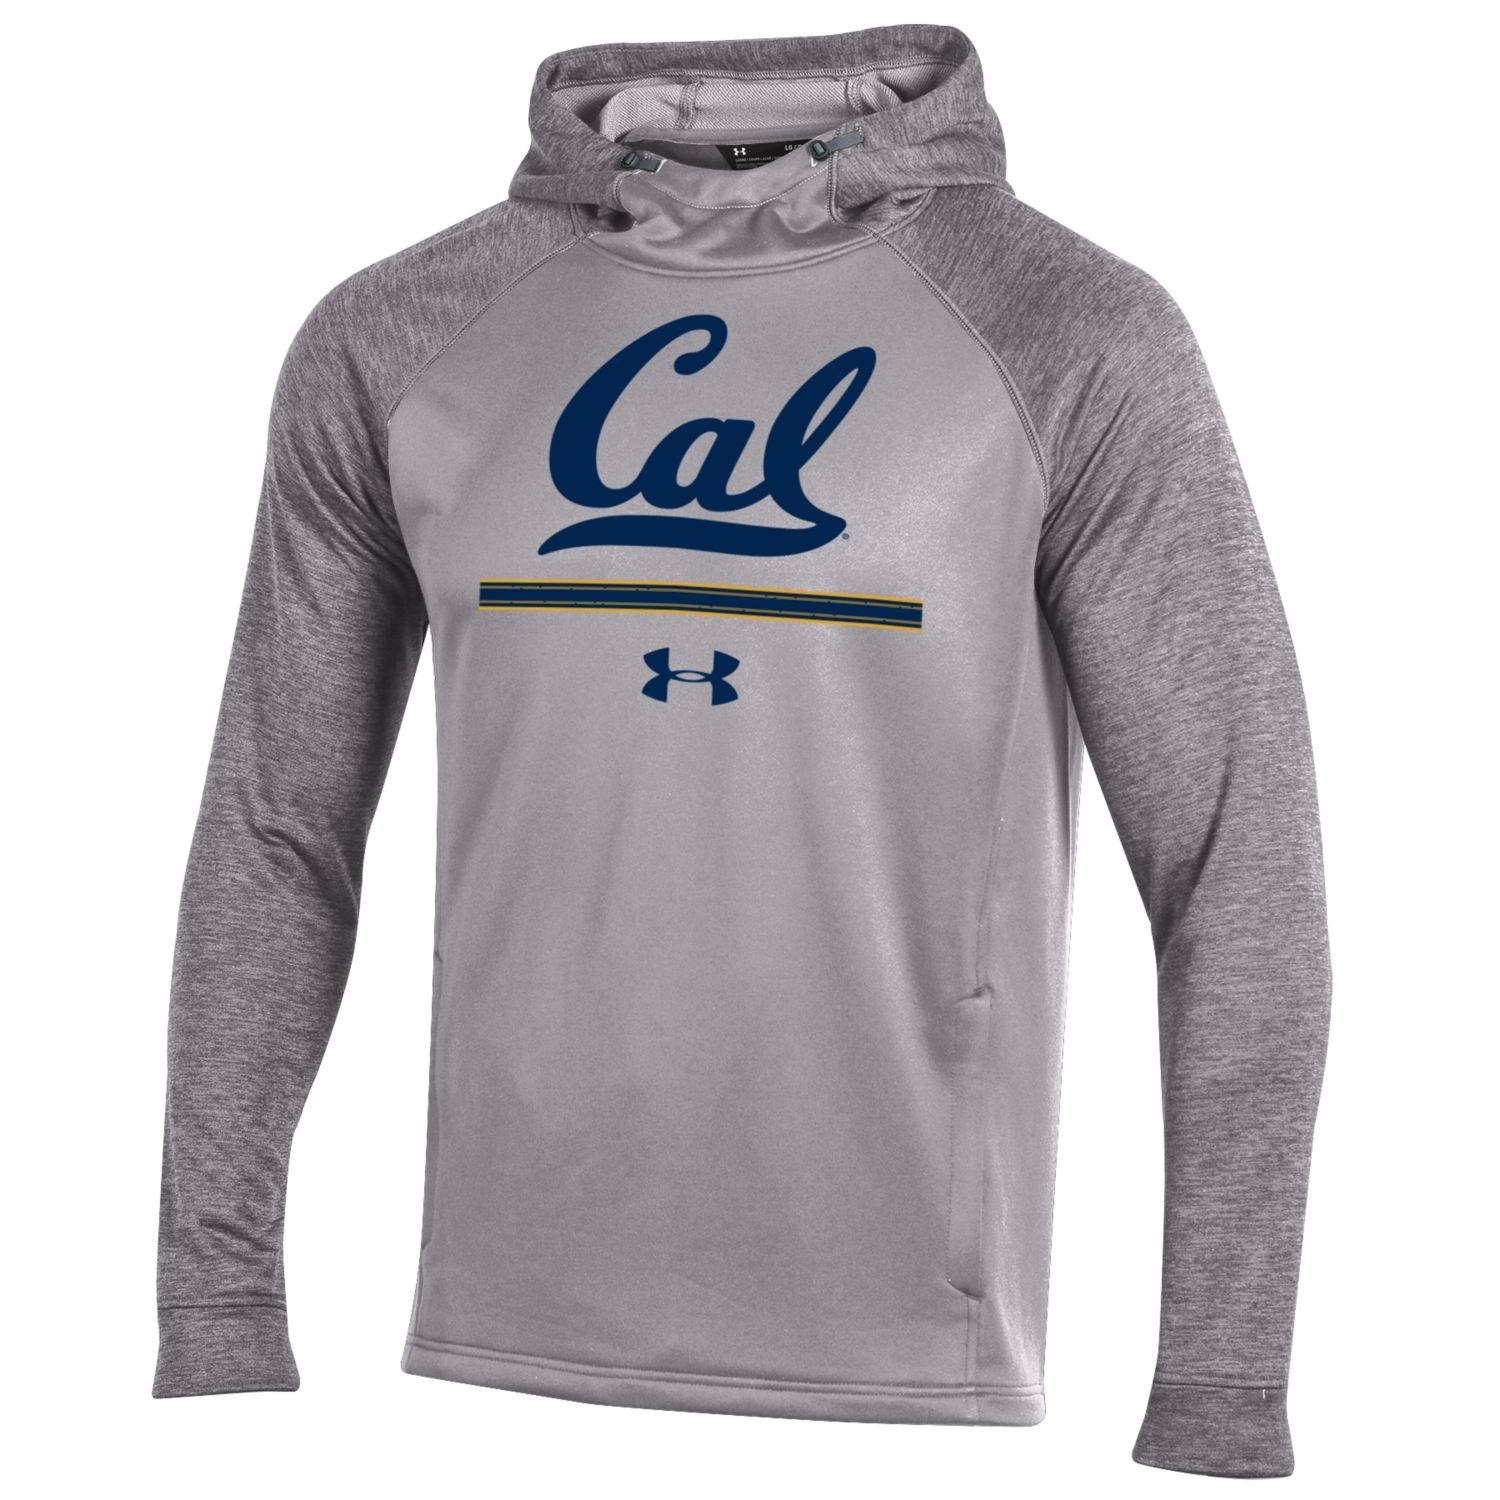 University of California Berkeley Under Armour Threadborne Tech Terry PO